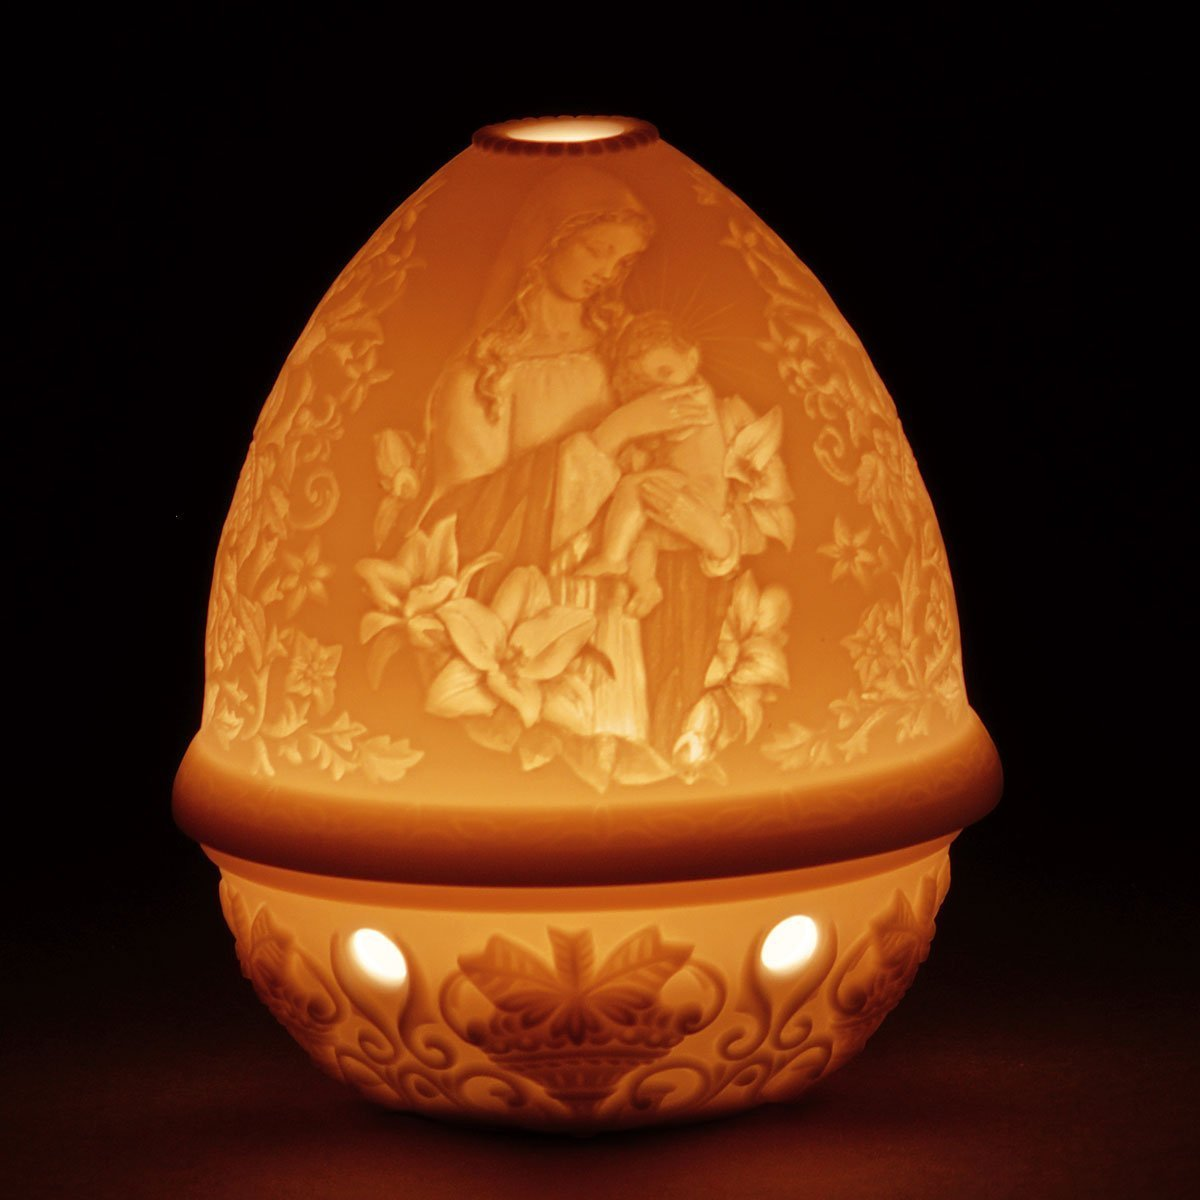 Lladro Madonna of the Flowers Lithophane Votive Light by Lladro (Image #1)